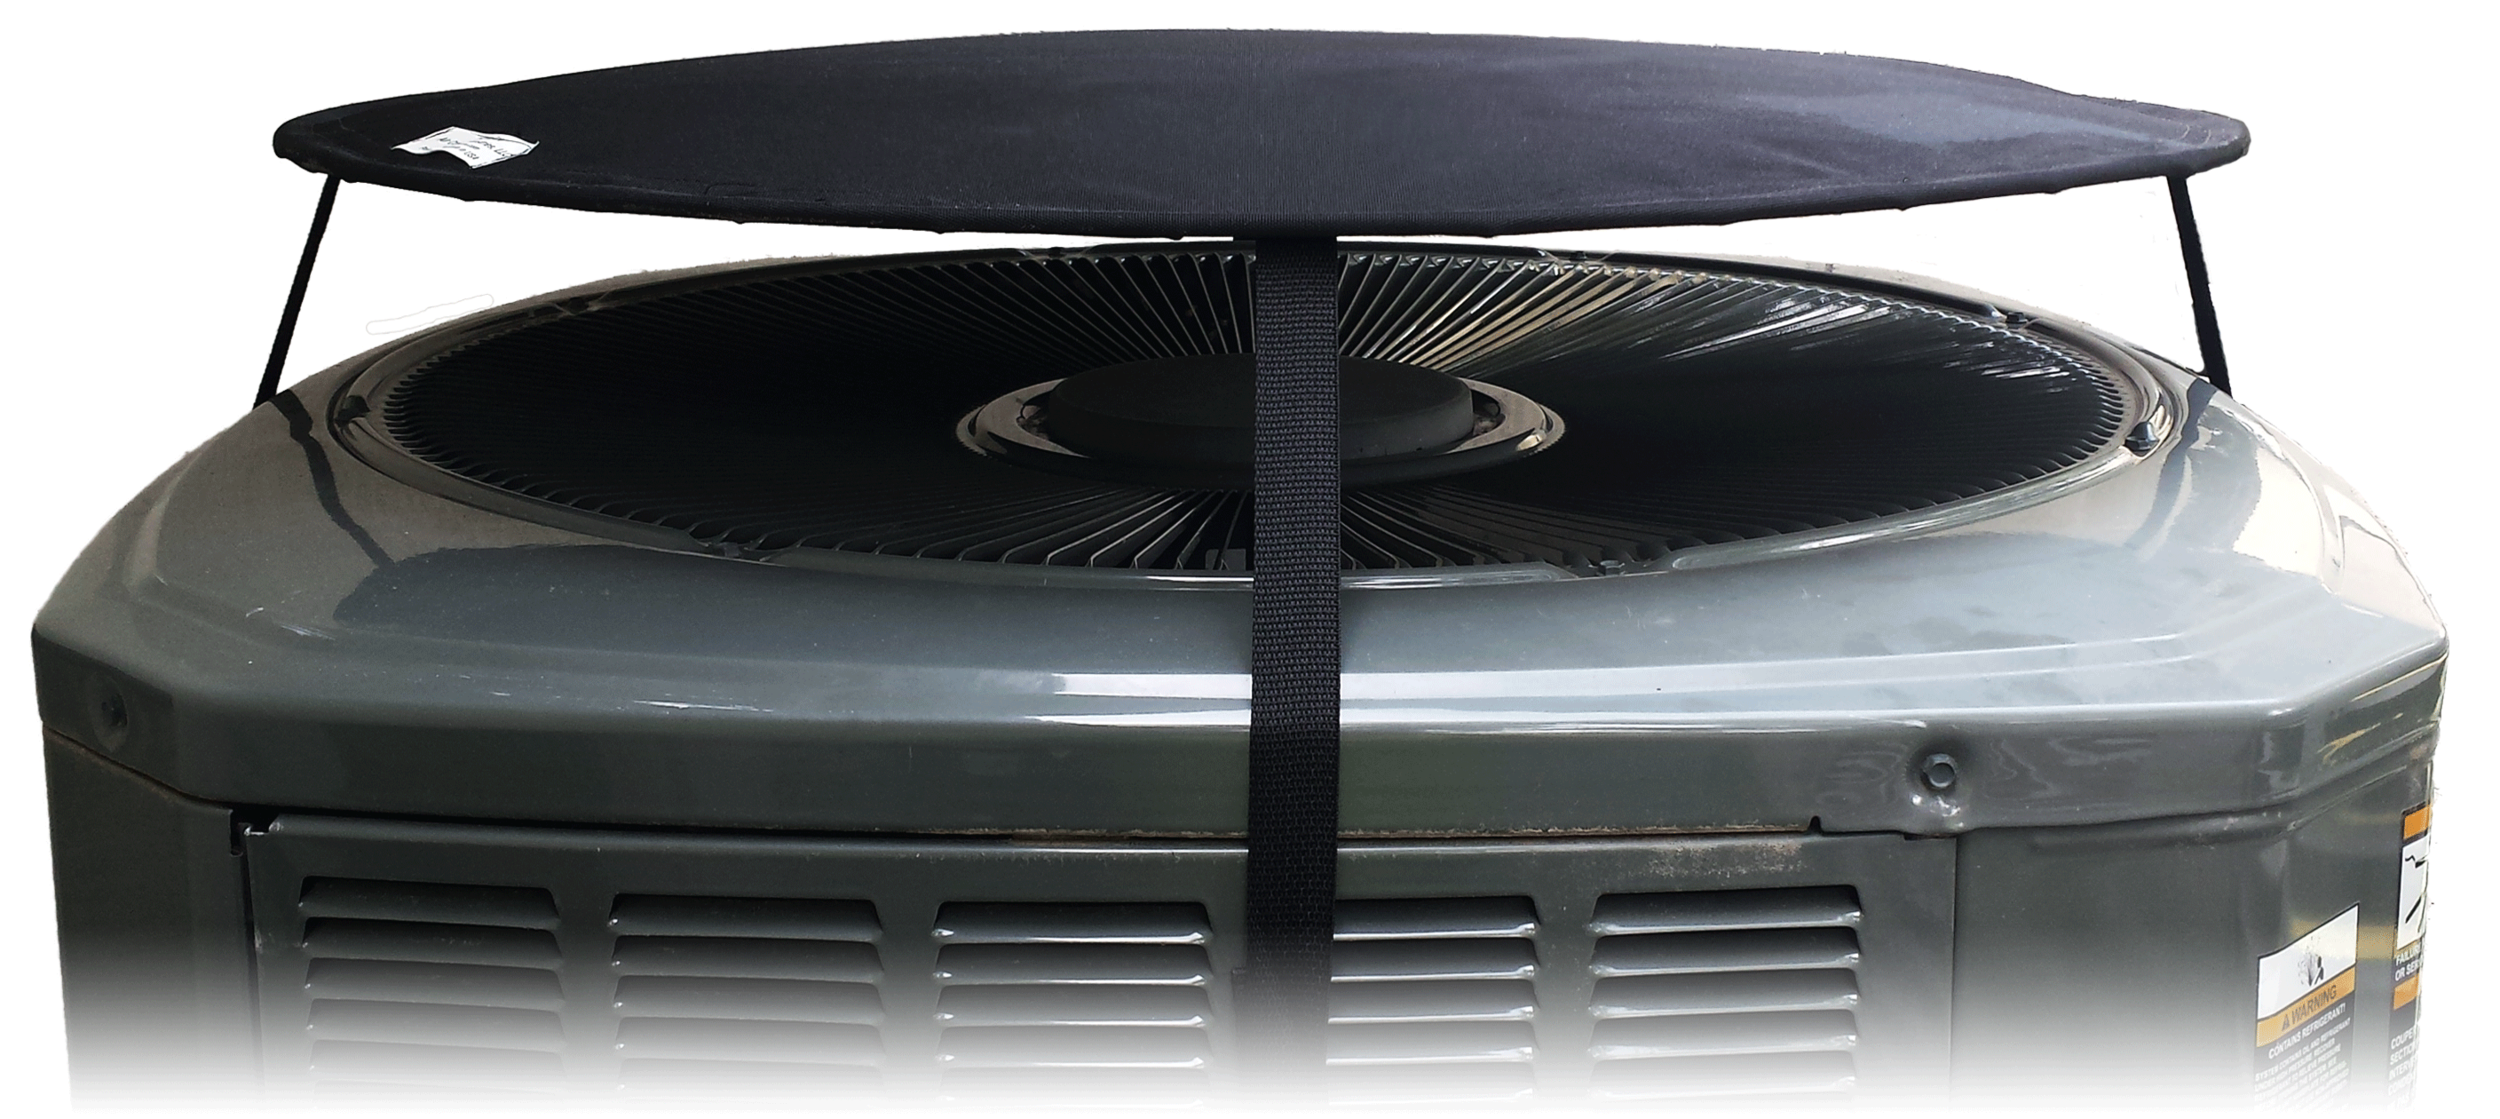 Hovcov Air Conditioner And Heat Pump Cover Floats Above Your Unit When Running As Air Vents Through The Openi Heat Pump Cover Air Conditioner Cover Heat Pump